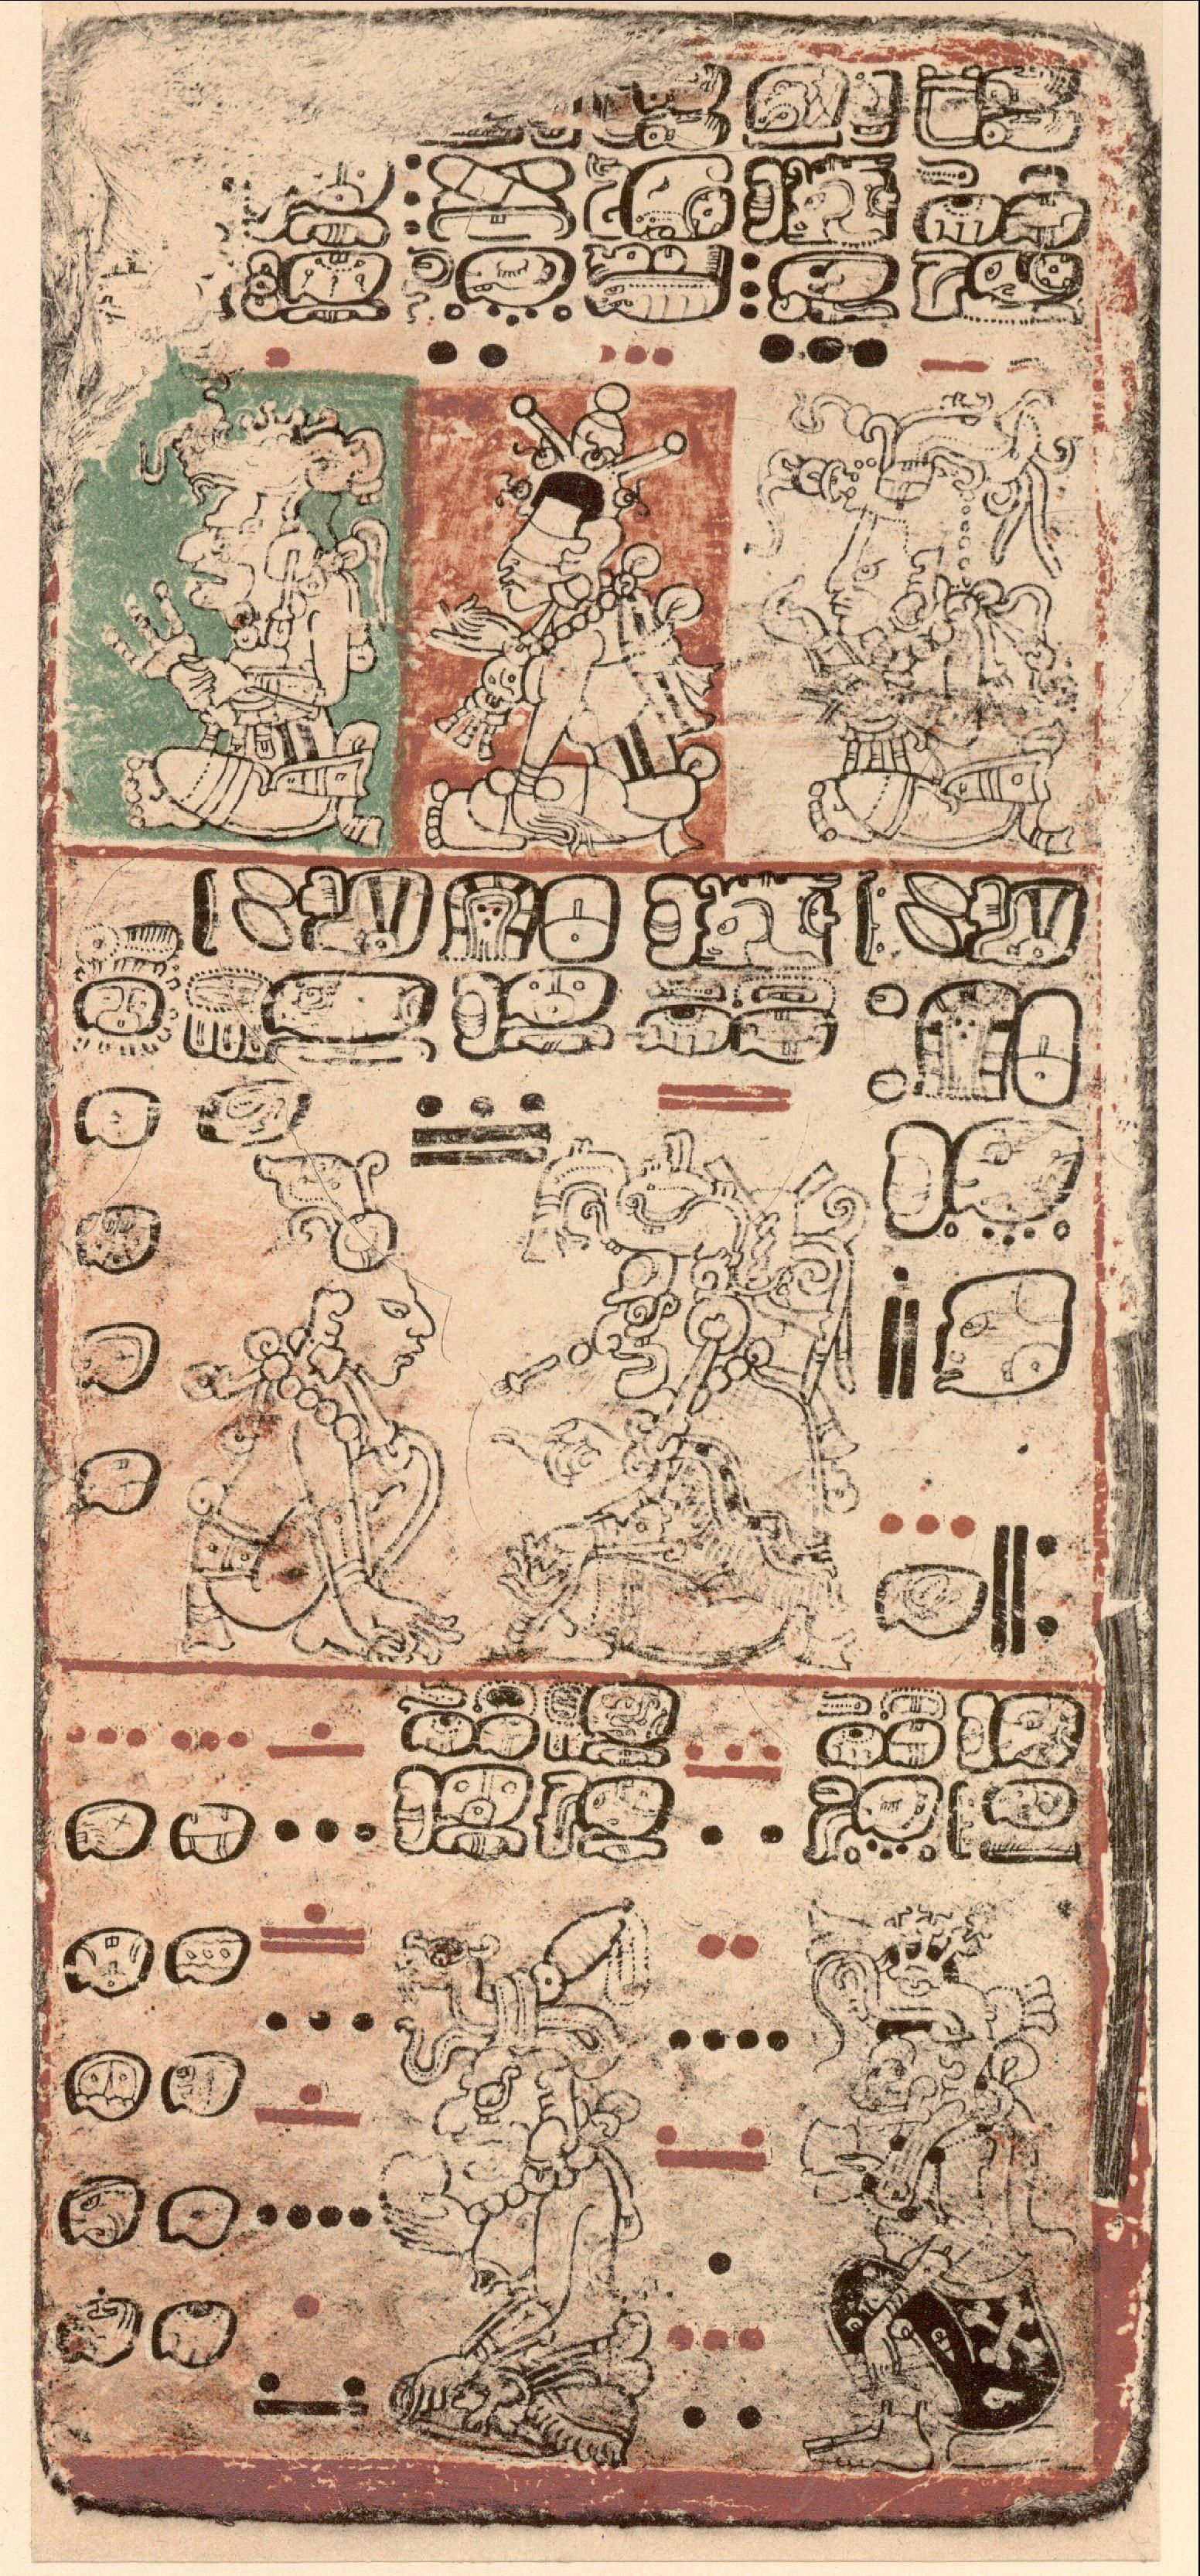 mayan art and architecture essay Summary of mesoamerican art architecture: mesoamerican architecture culminated in the maya city-states mesoamerican sculpture culminated under the maya.